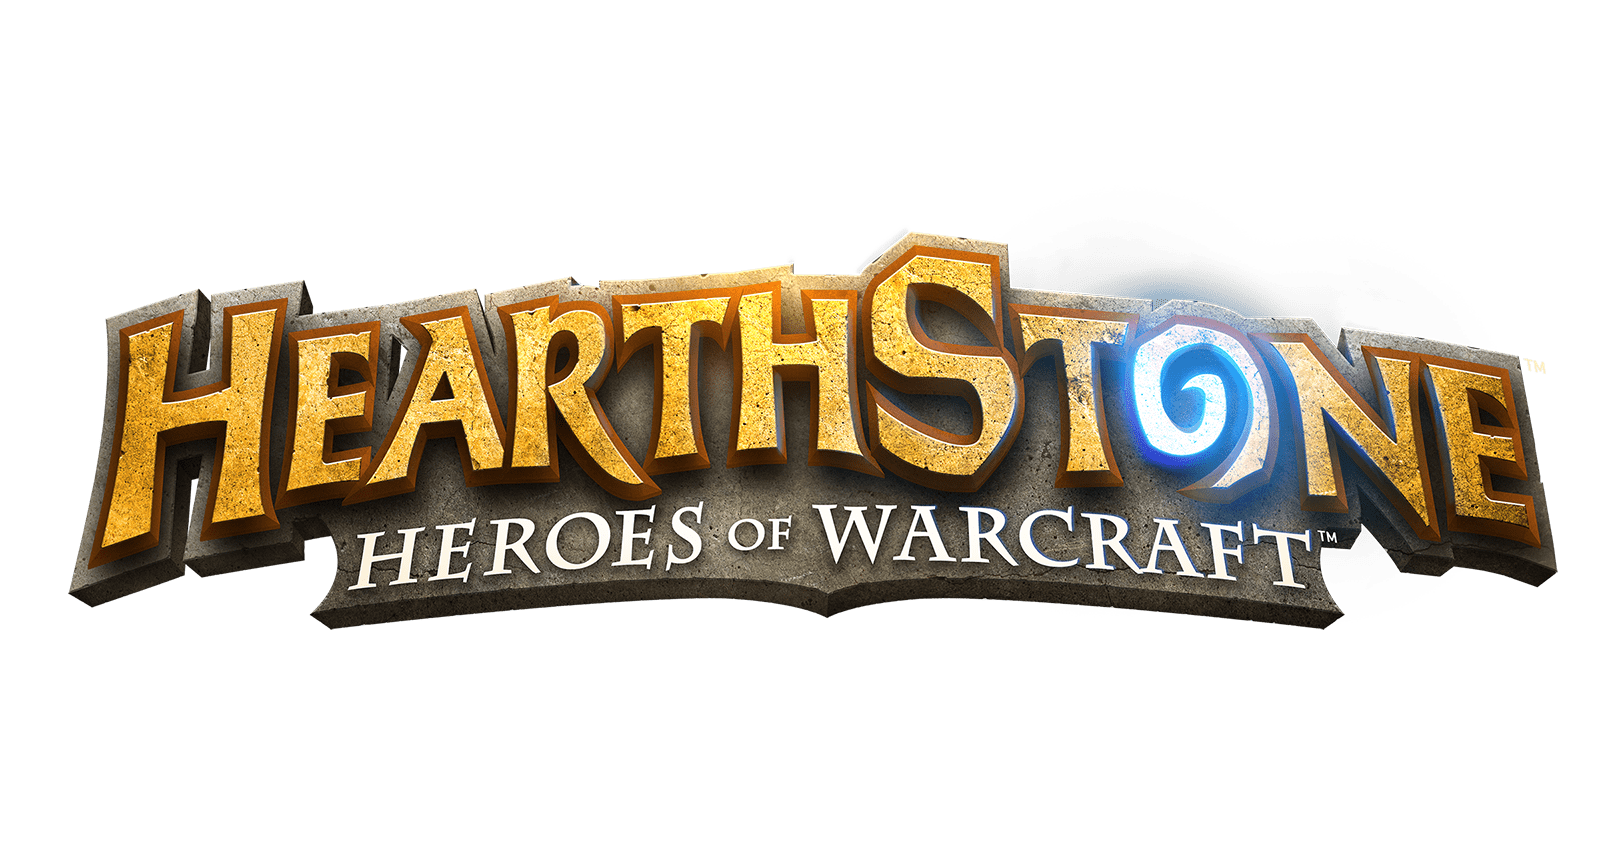 Wow clipart logo. Hearthstone heroes of warcraft